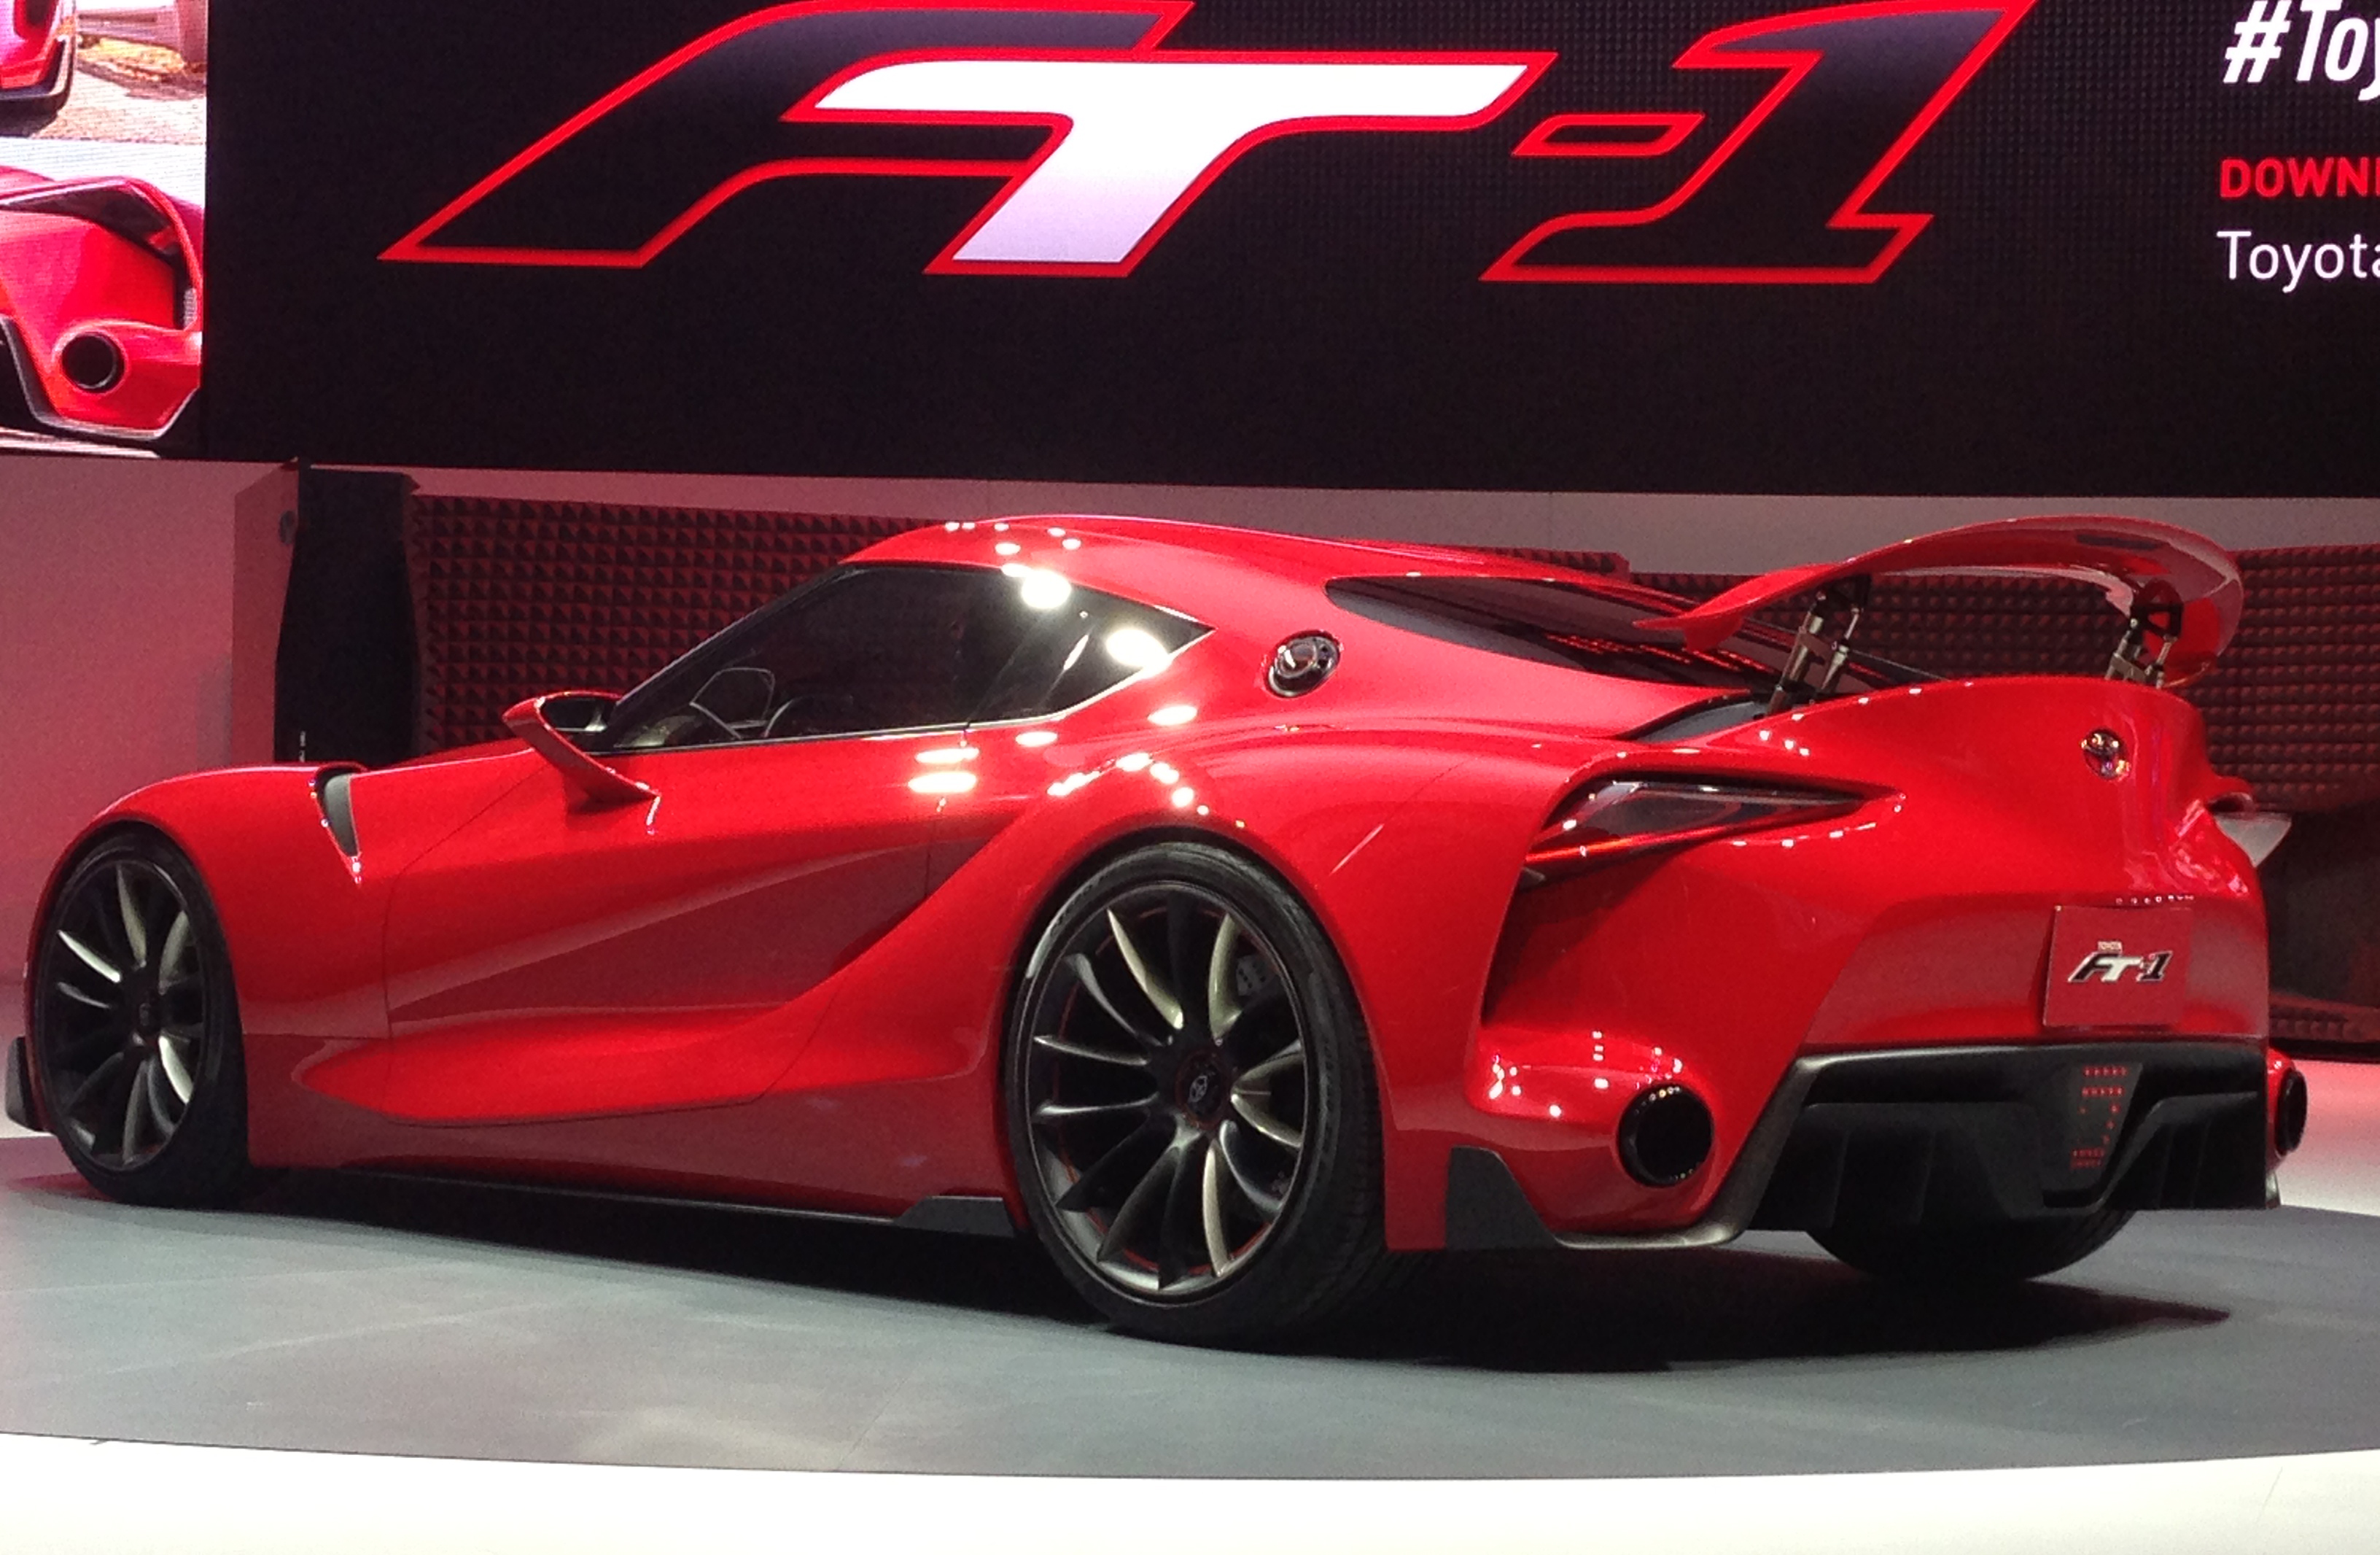 Toyota FT-1 concept shocks Detroit – the next Supra? Paul ...